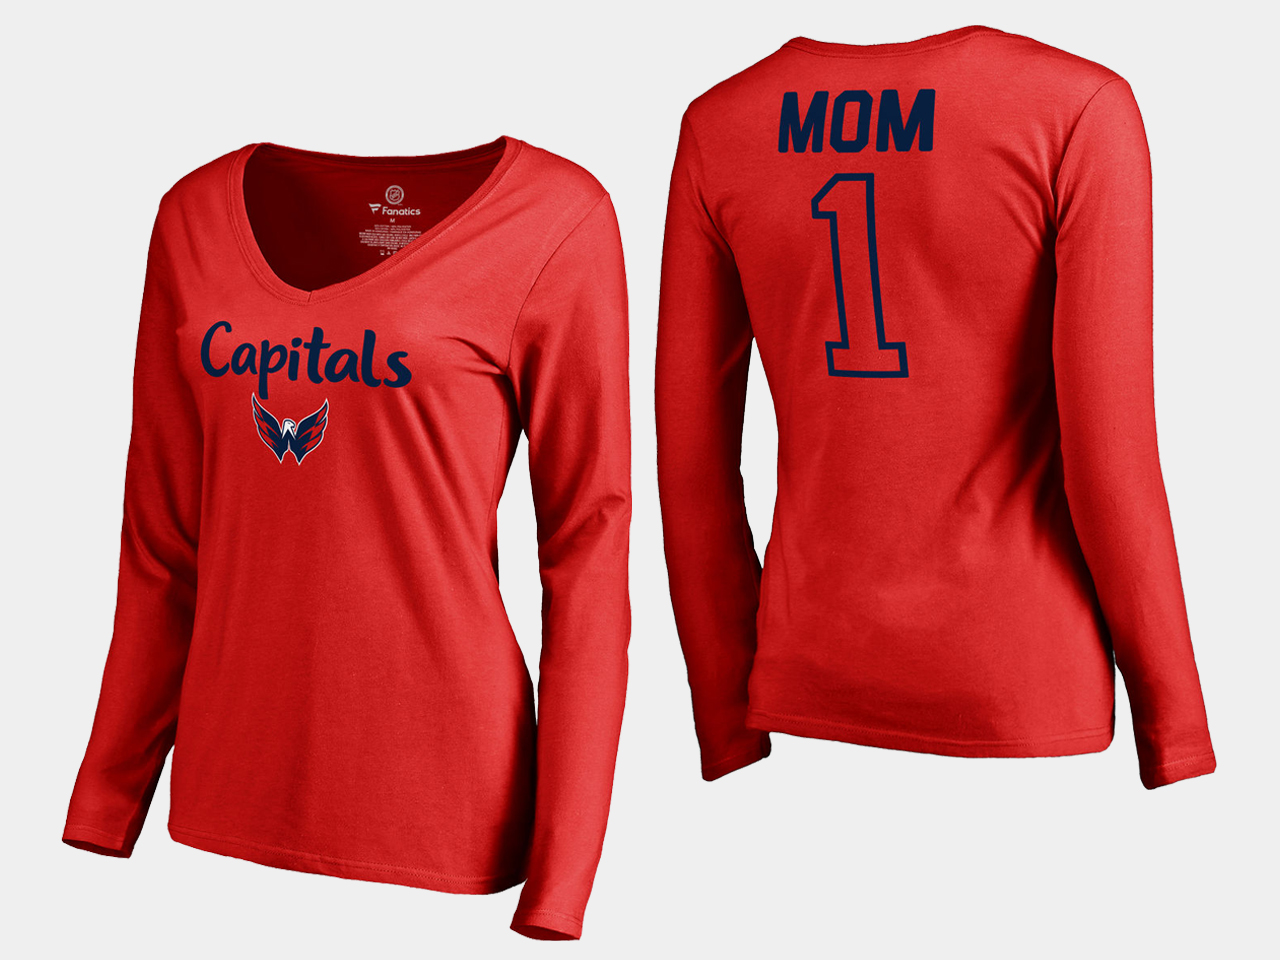 Red Washington Capitals Women's T-Shirt Mother's Day